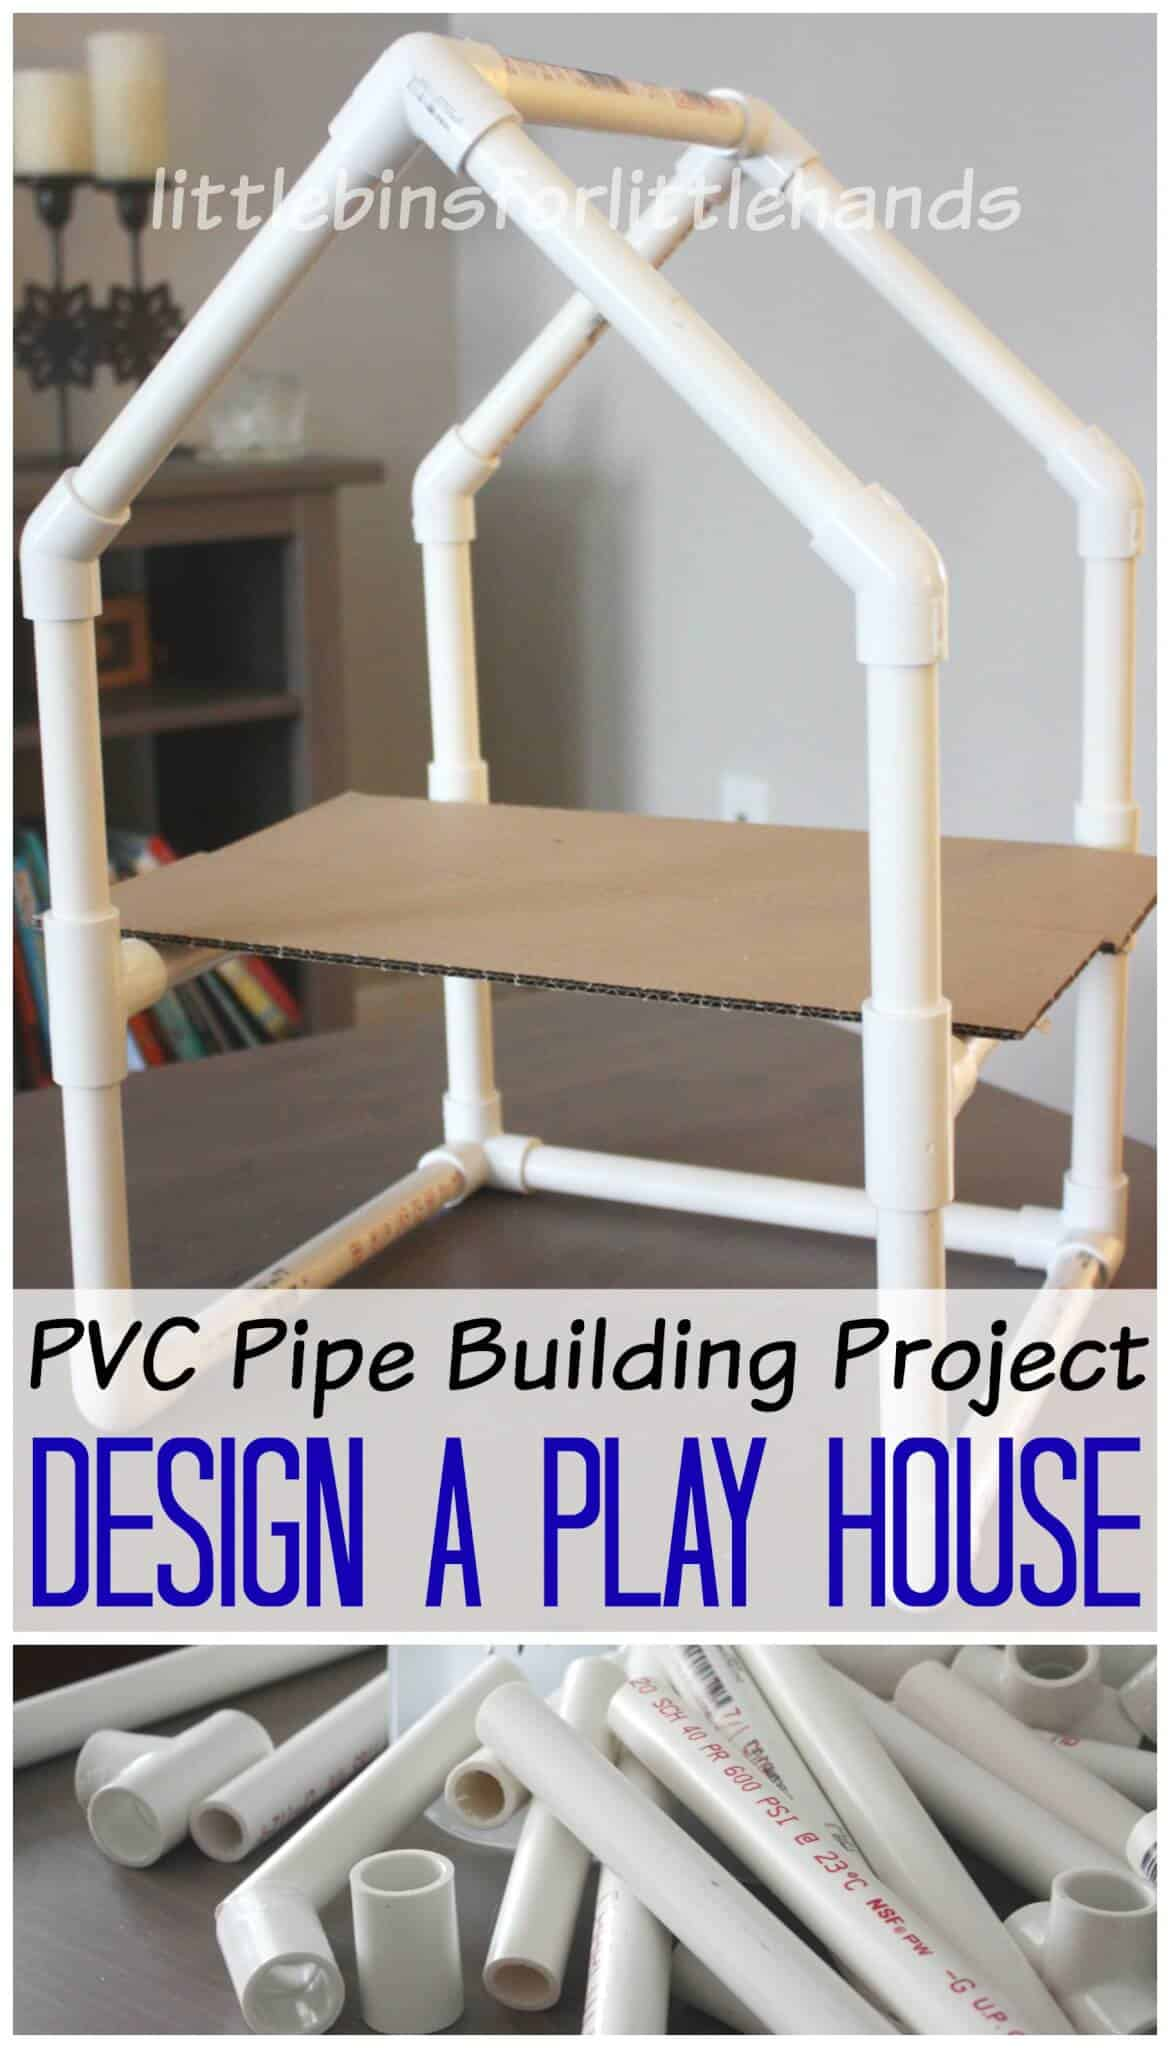 Just coop build chicken coop pvc pipe details for Free house projects